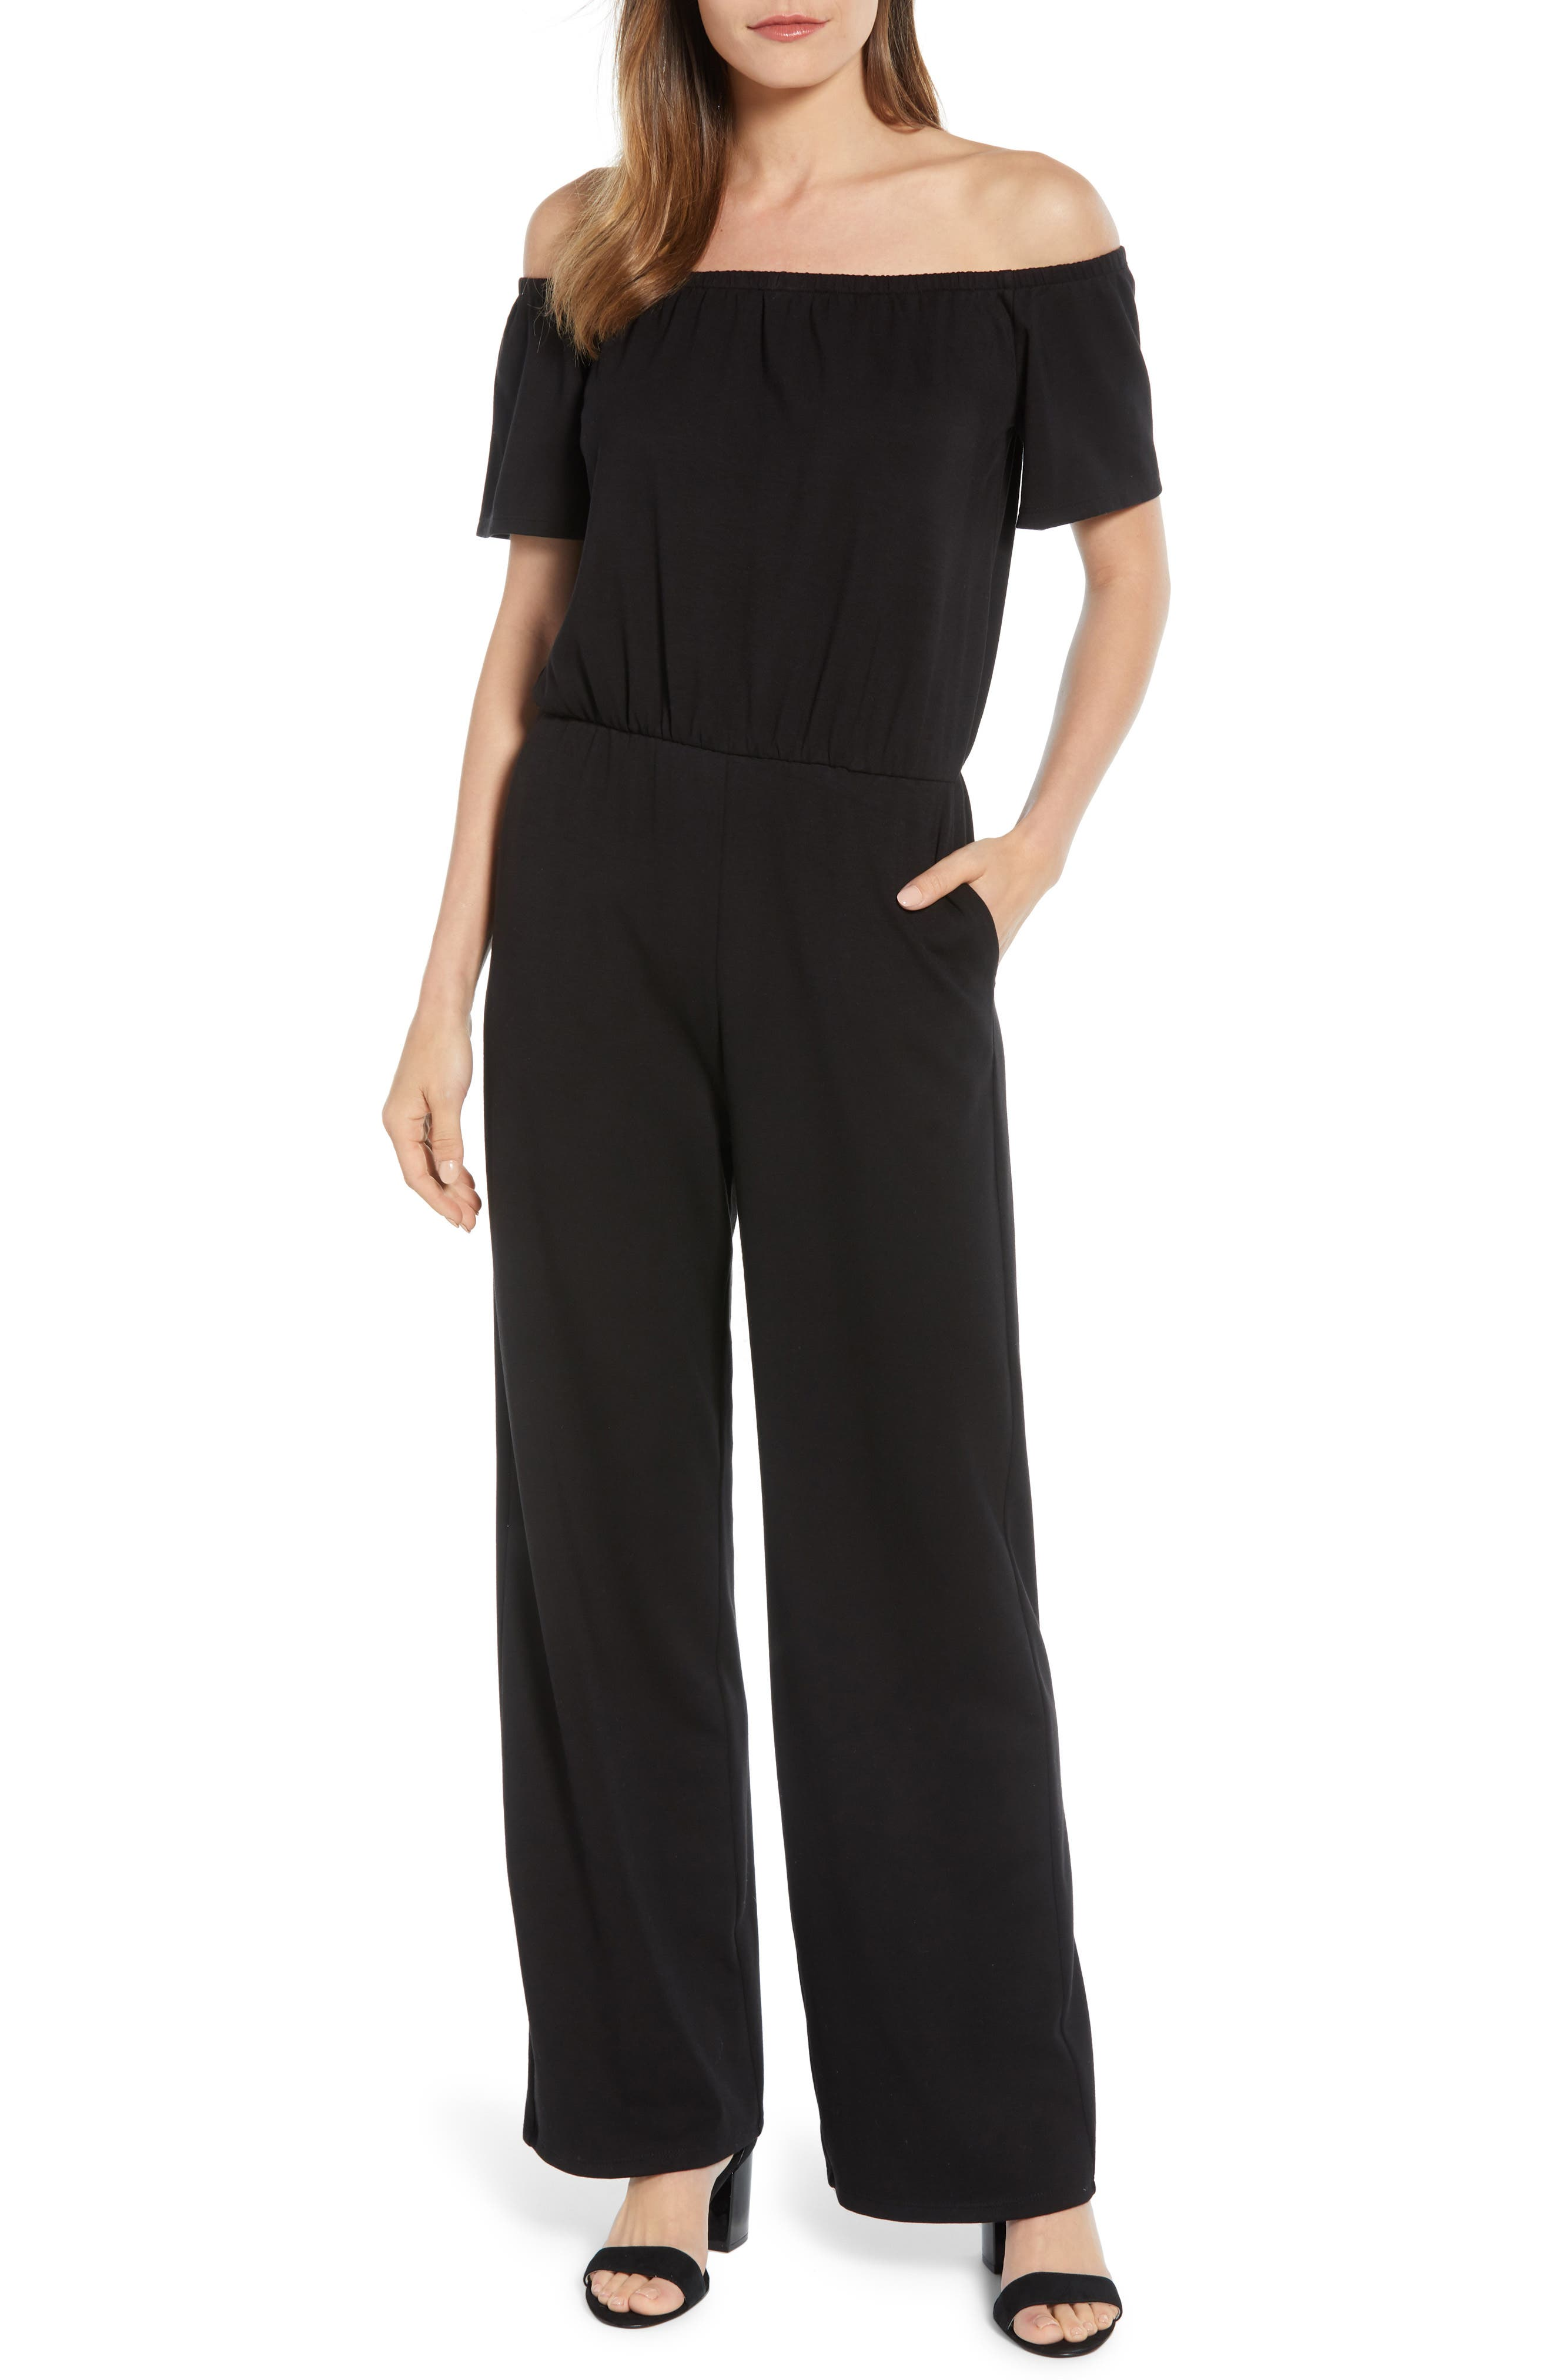 Gibson x Living in Yellow Iris Off the Shoulder Ponte Knit Jumpsuit (Regular & Petite) (Nordstrom Exclusive)